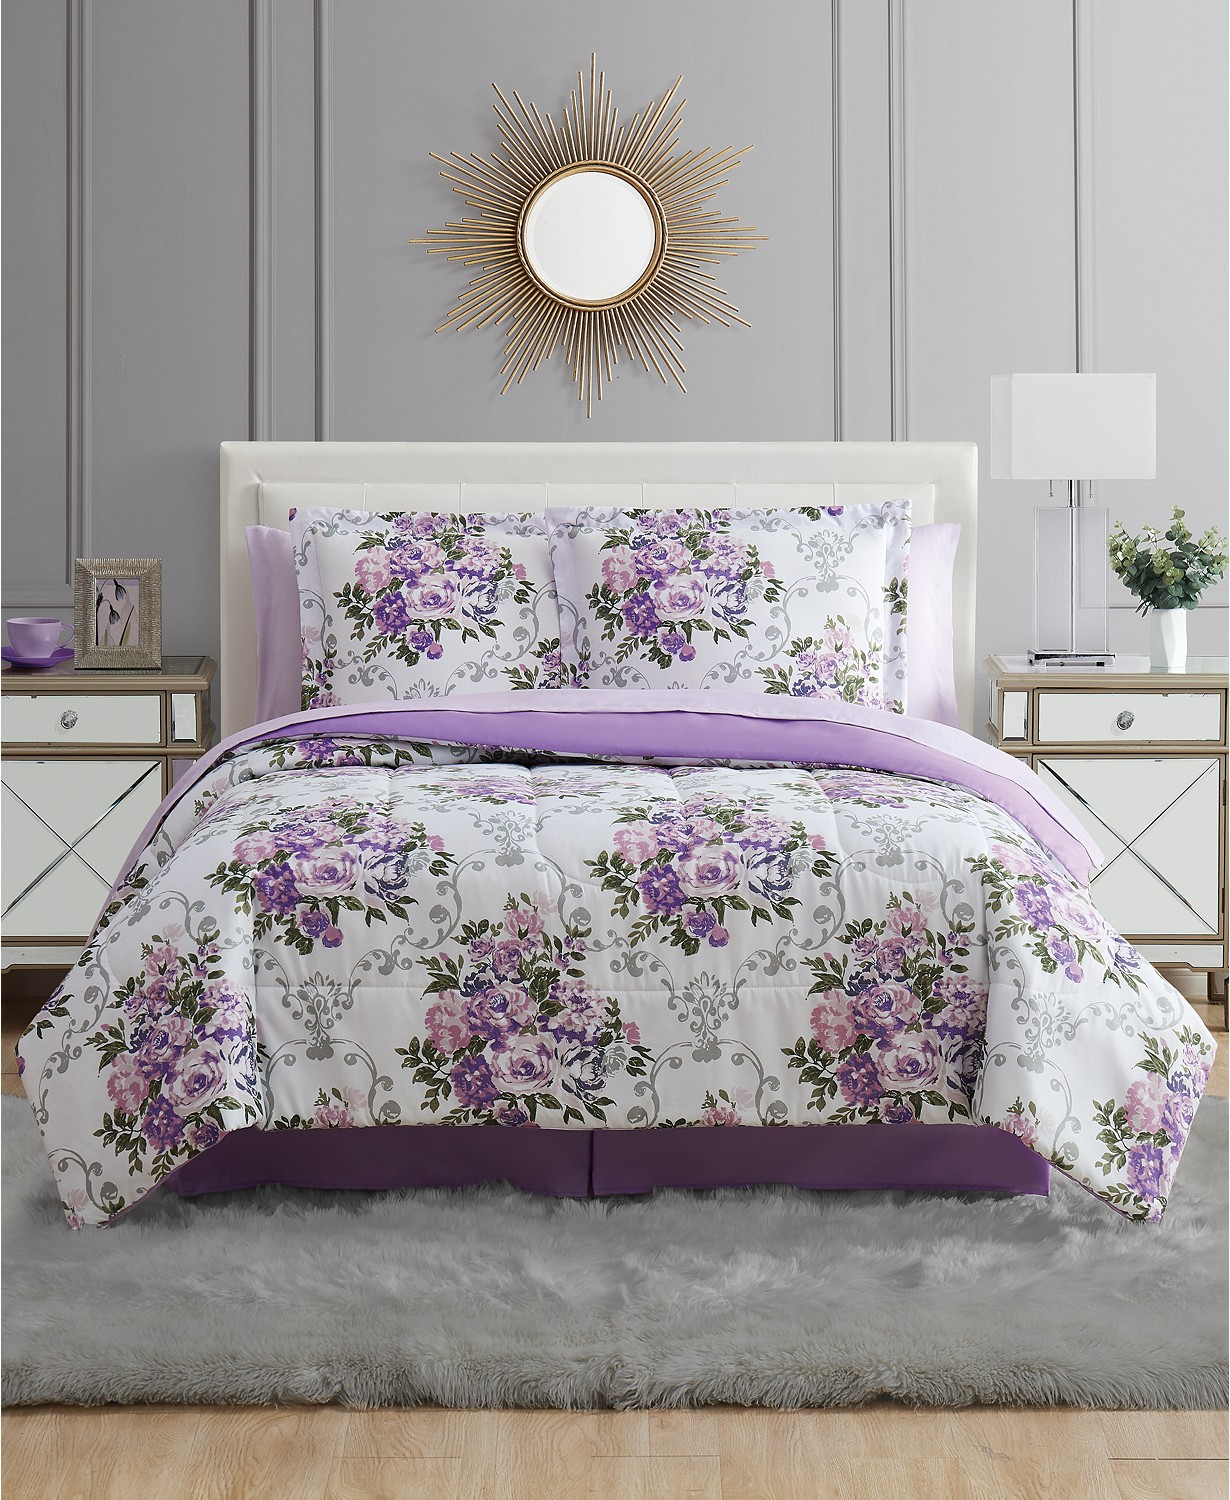 (70% OFF Deal) Floral Bouquet Full 8PC Comforter Set $29.99